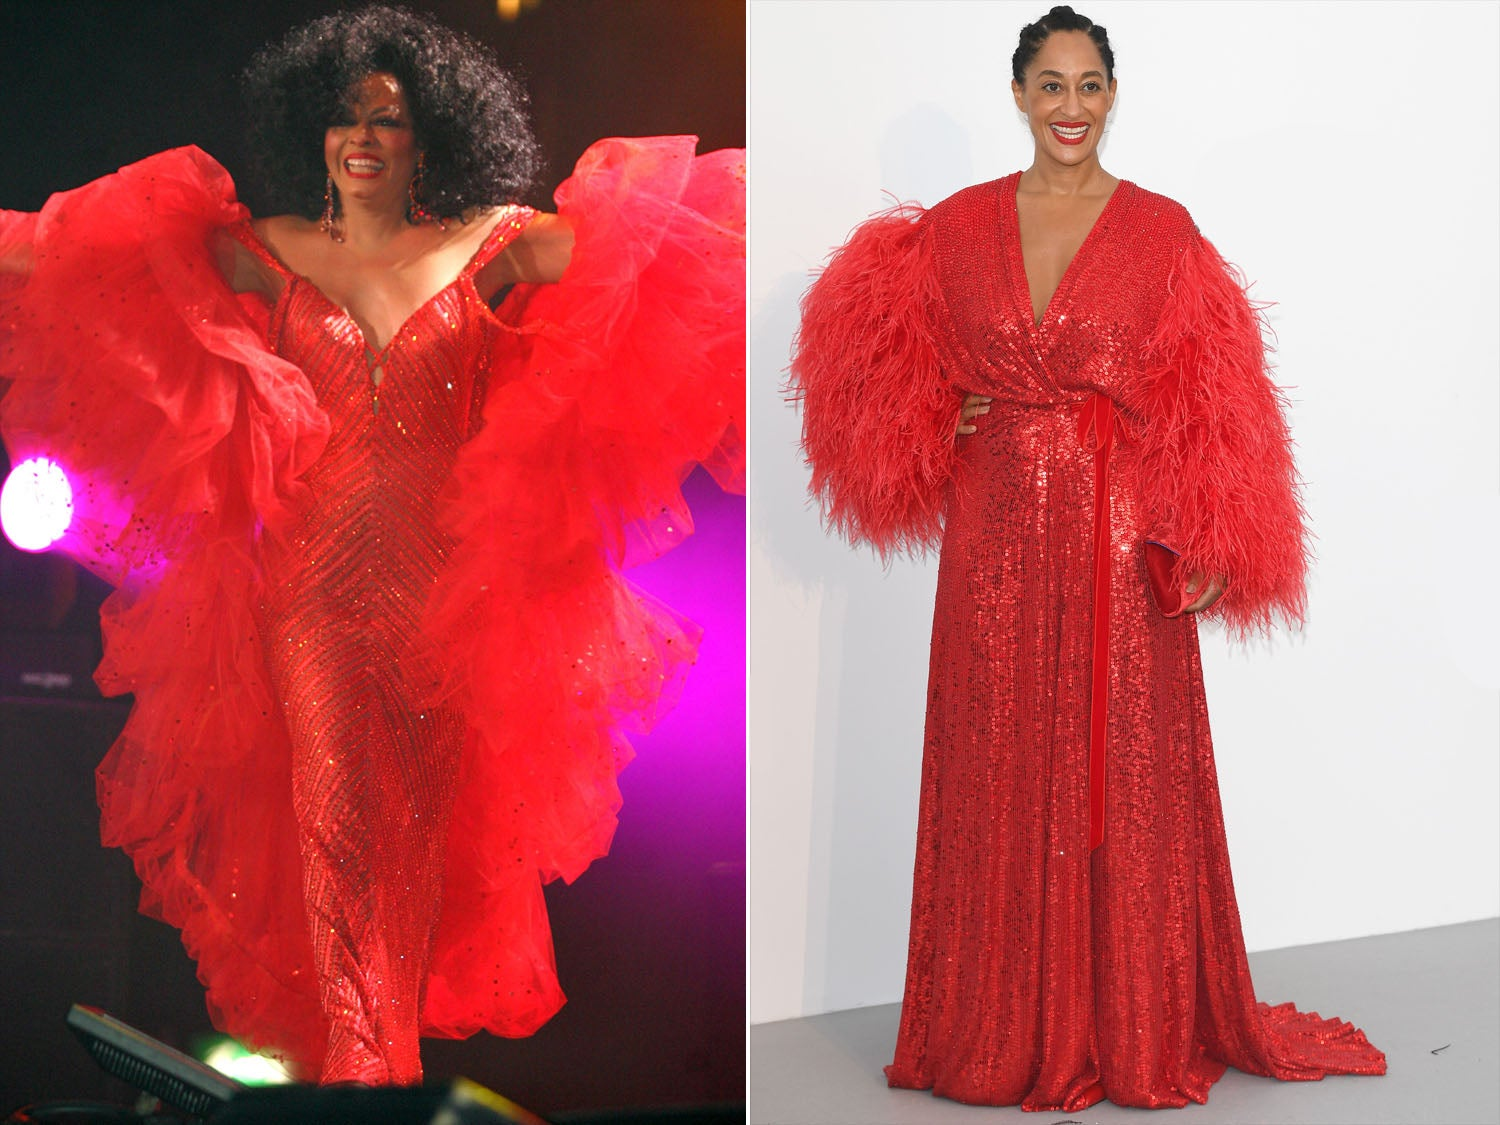 Tracee Ellis Ross Channels Her Mom Diana Ross in Red Sequin Gown at the 2017 amfAR Gala